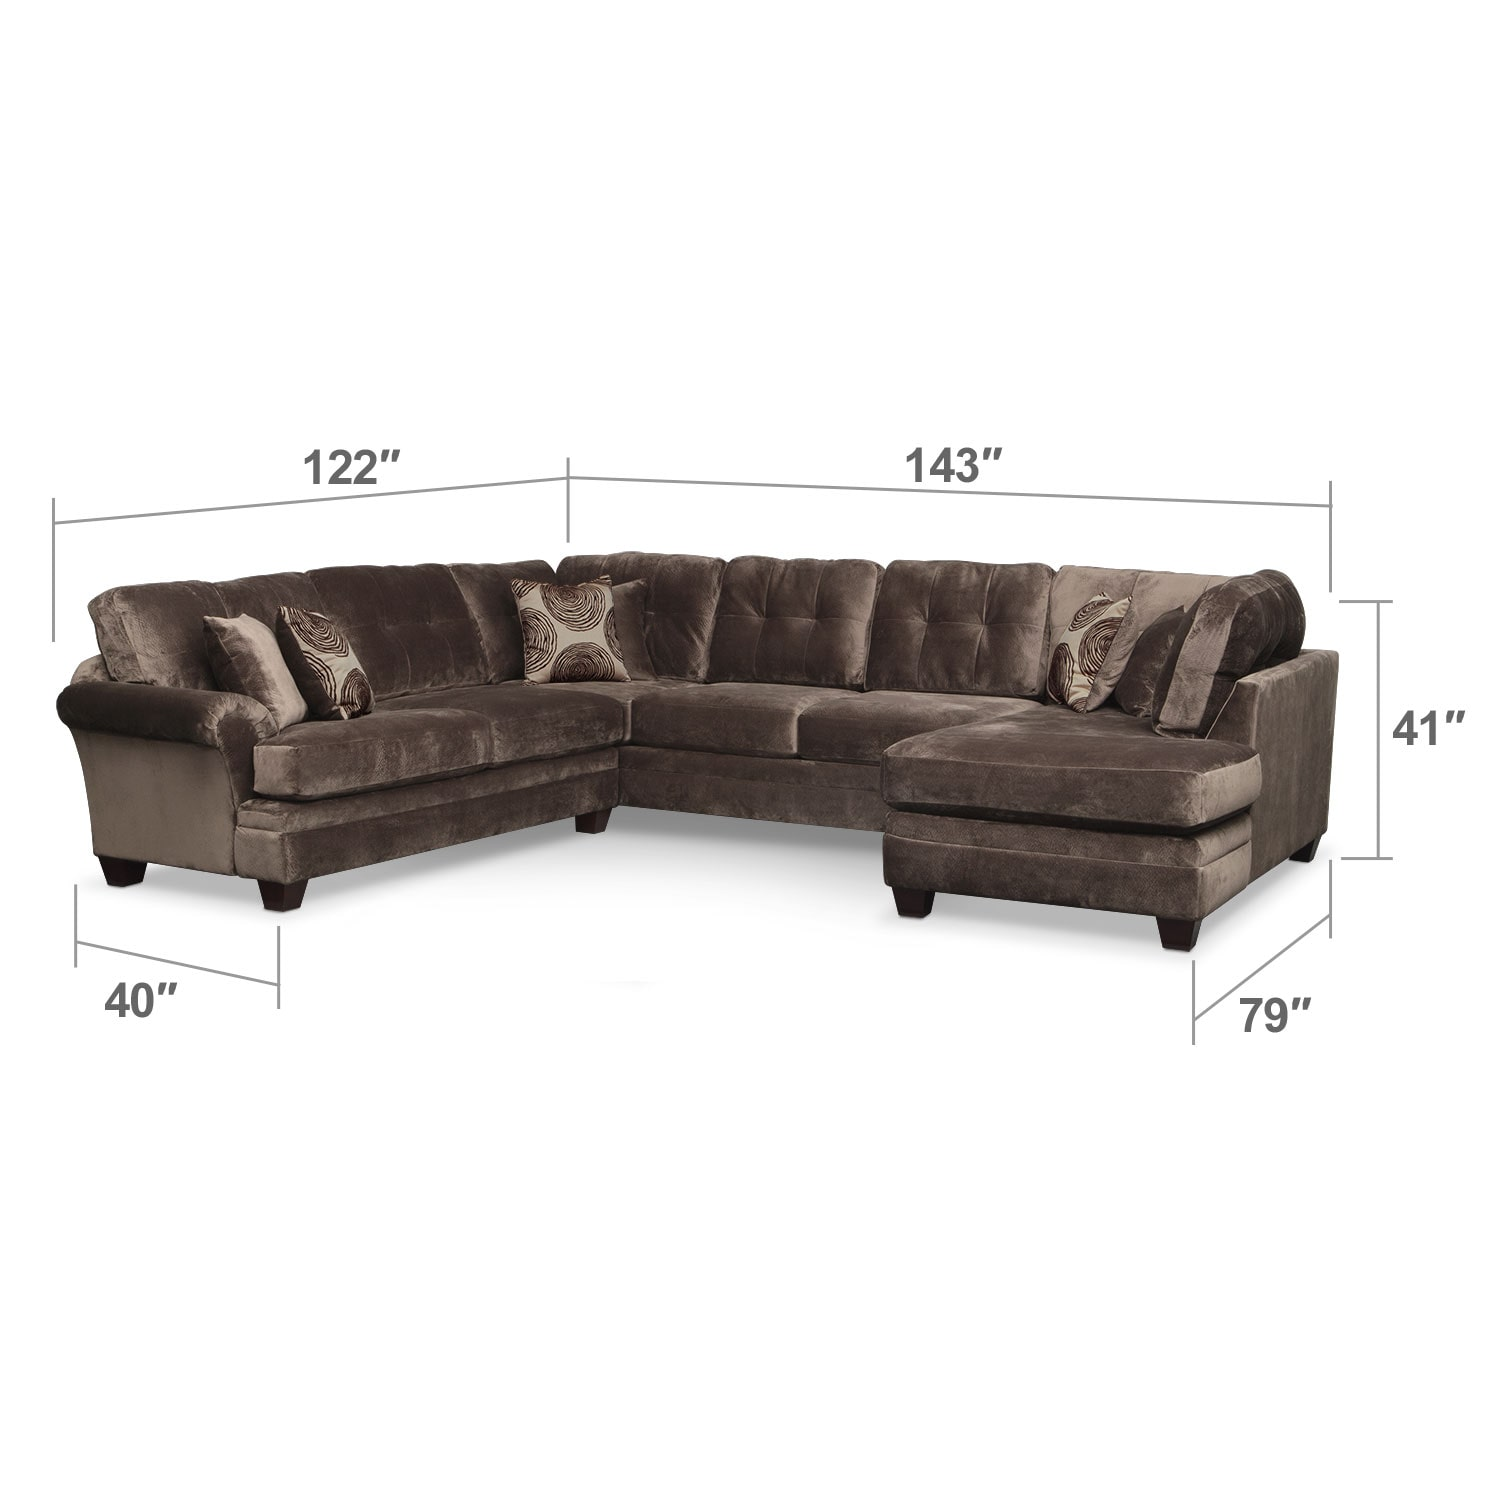 Living Room Furniture - Cordelle 3-Piece Sectional - Chocolate